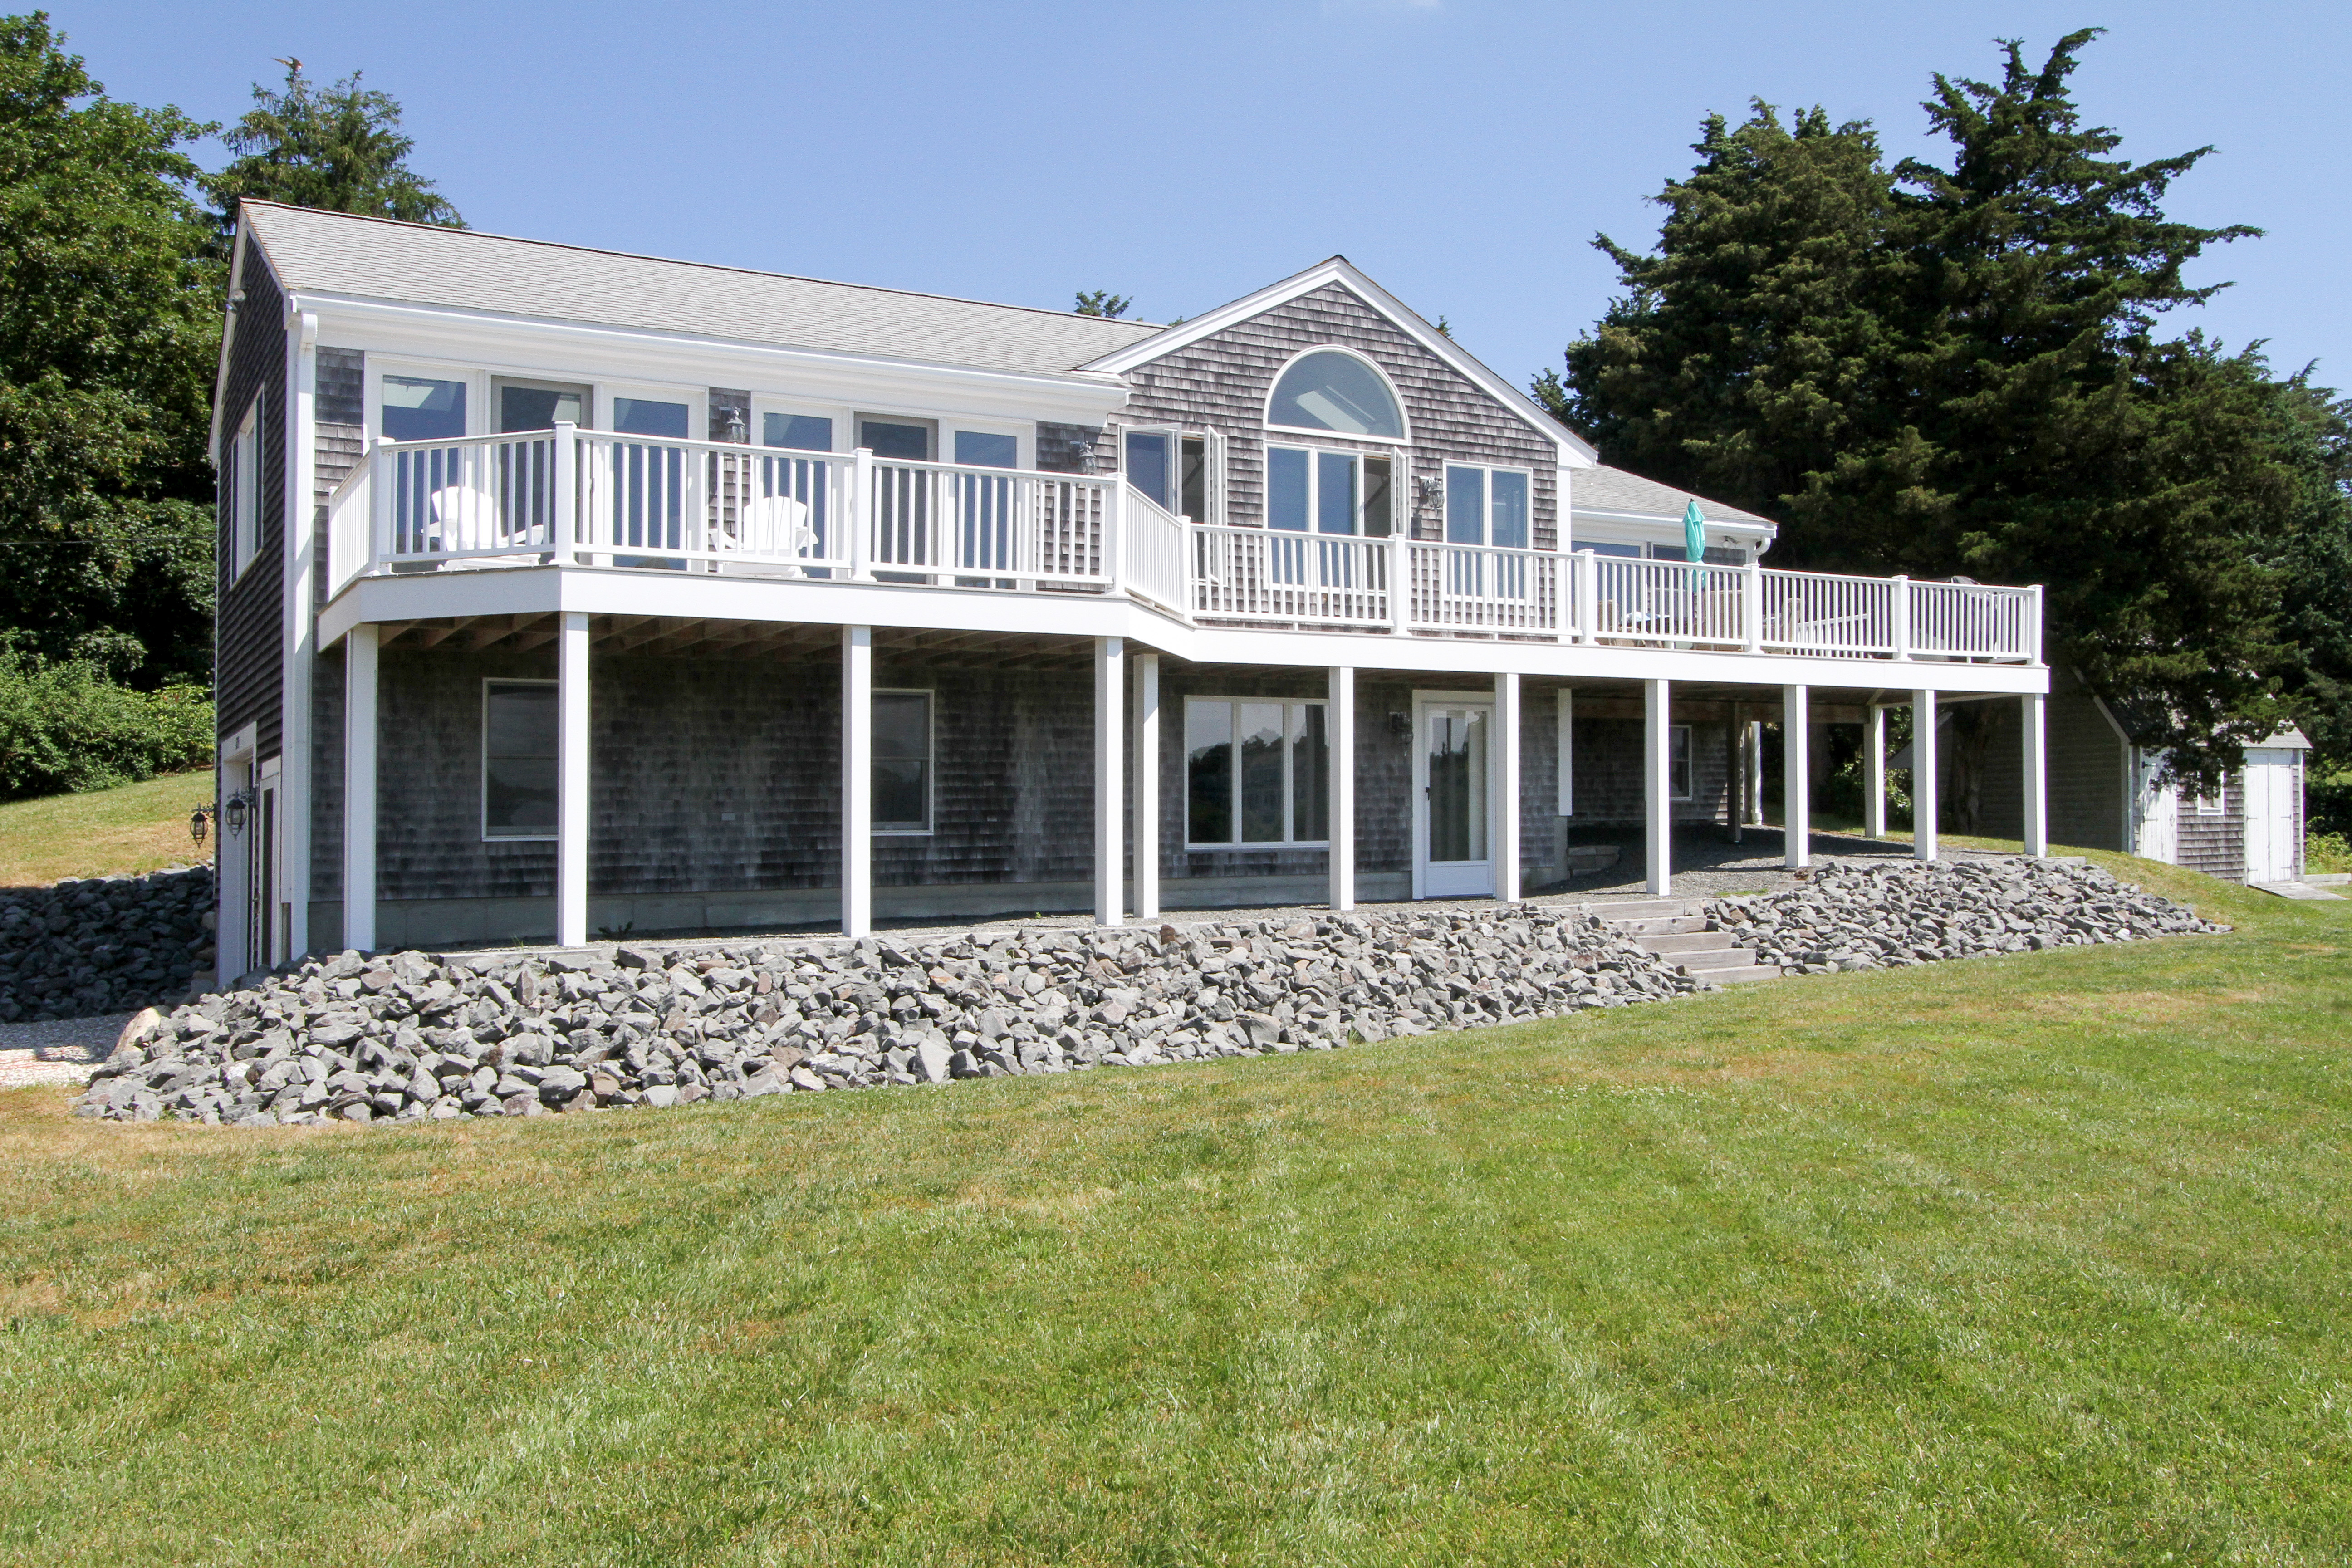 Eastham MA Vacation Rental Welcome! This perfect